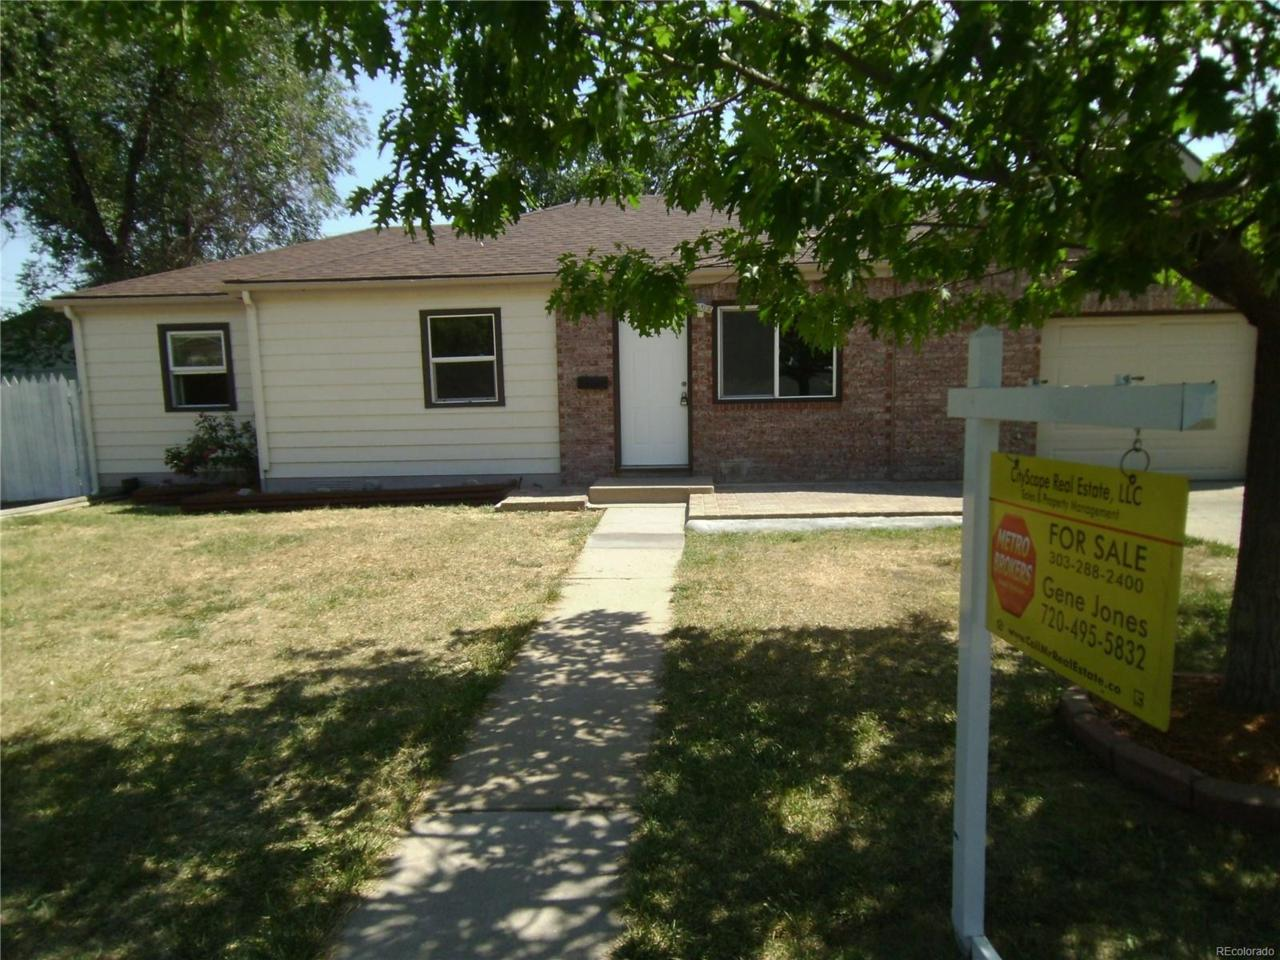 2220 Lilly Drive, Thornton, CO 80229 (MLS #8560993) :: 8z Real Estate